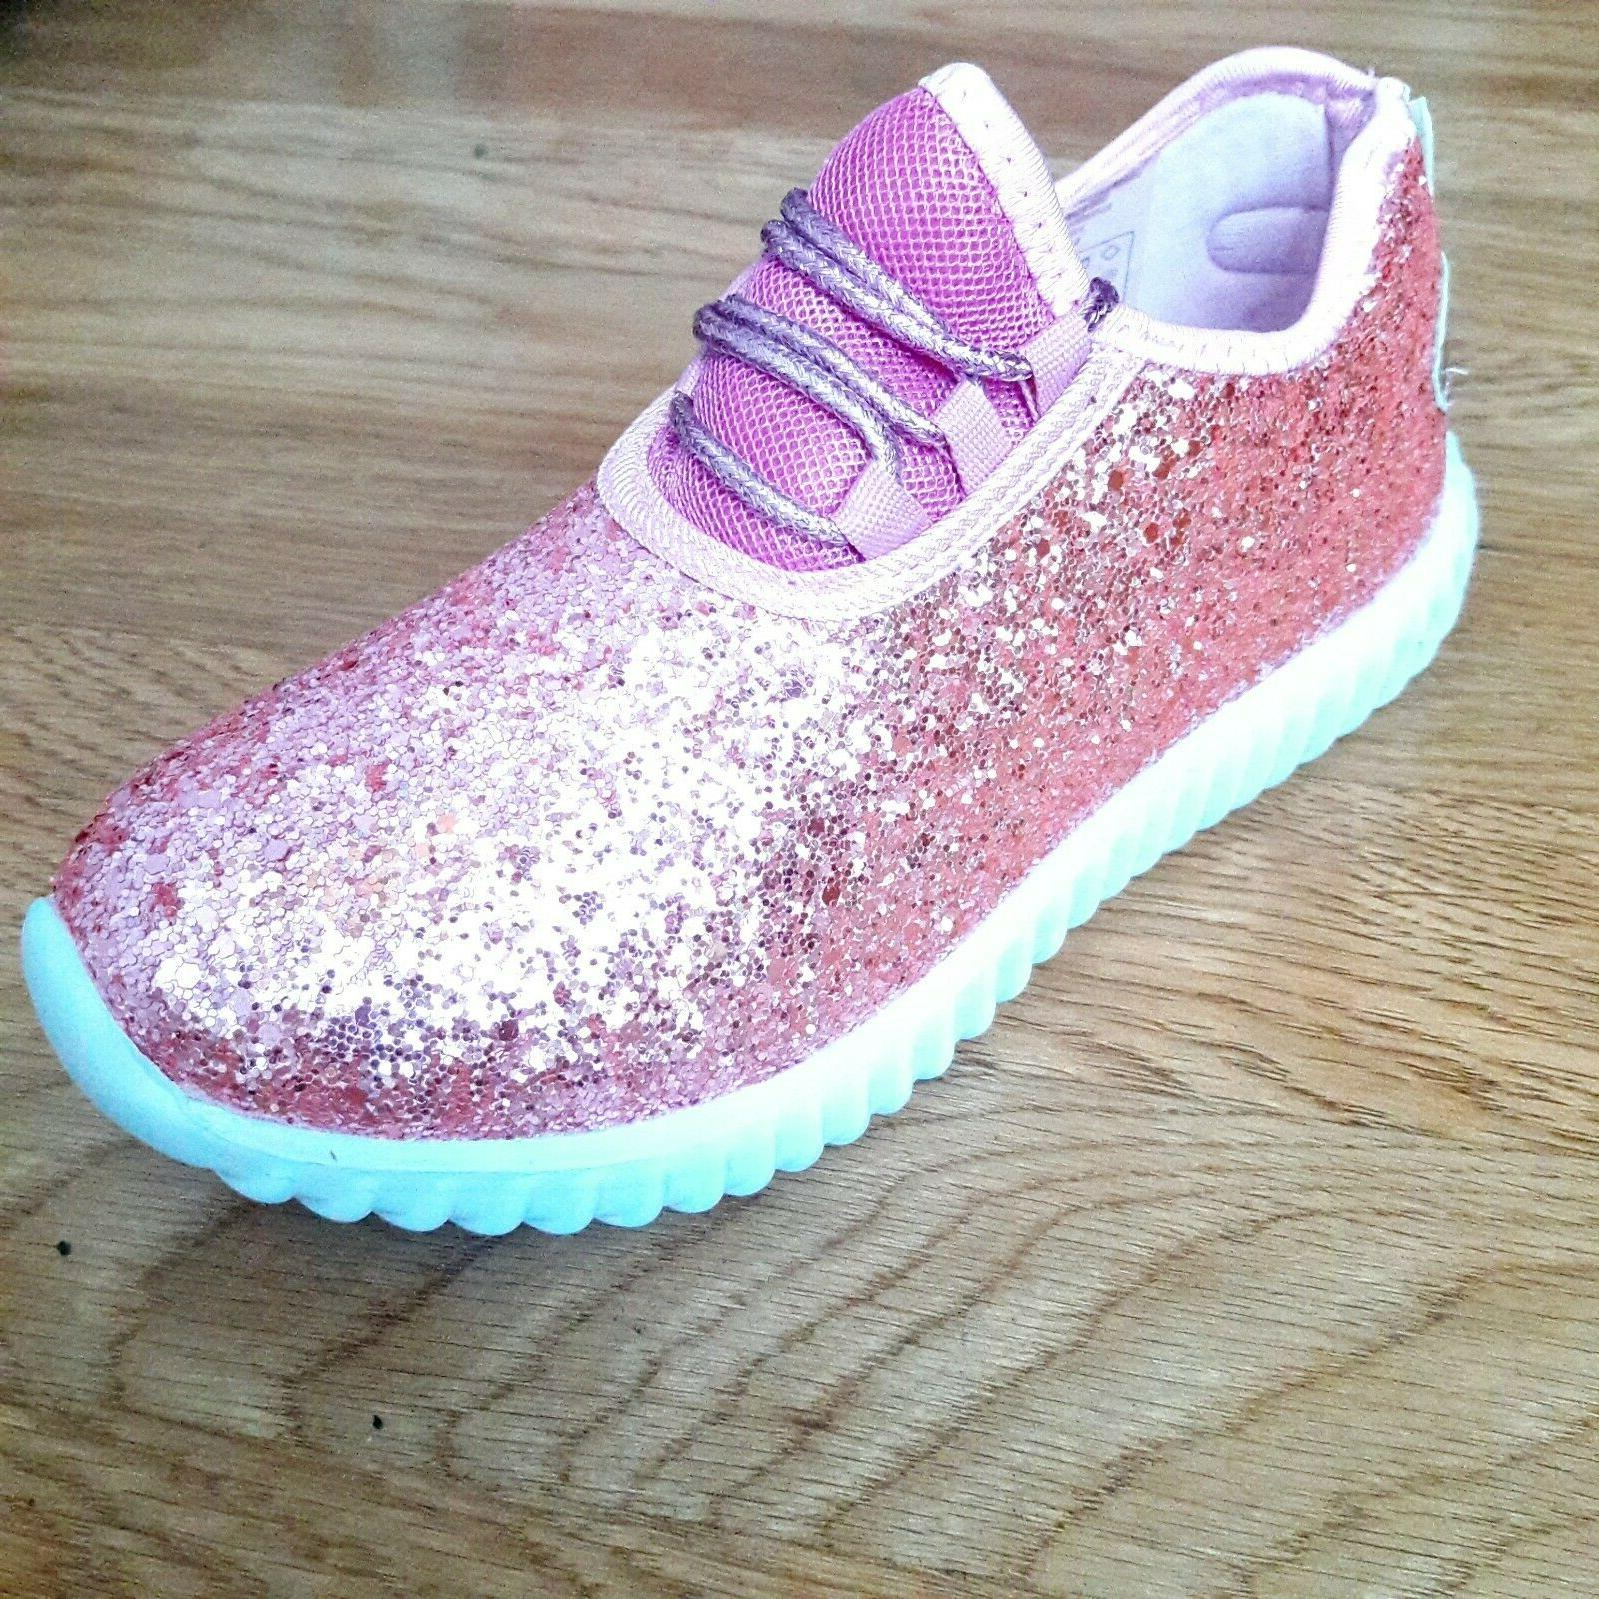 Big Tennis Shoes Glitter Joggers Size 10-3 New